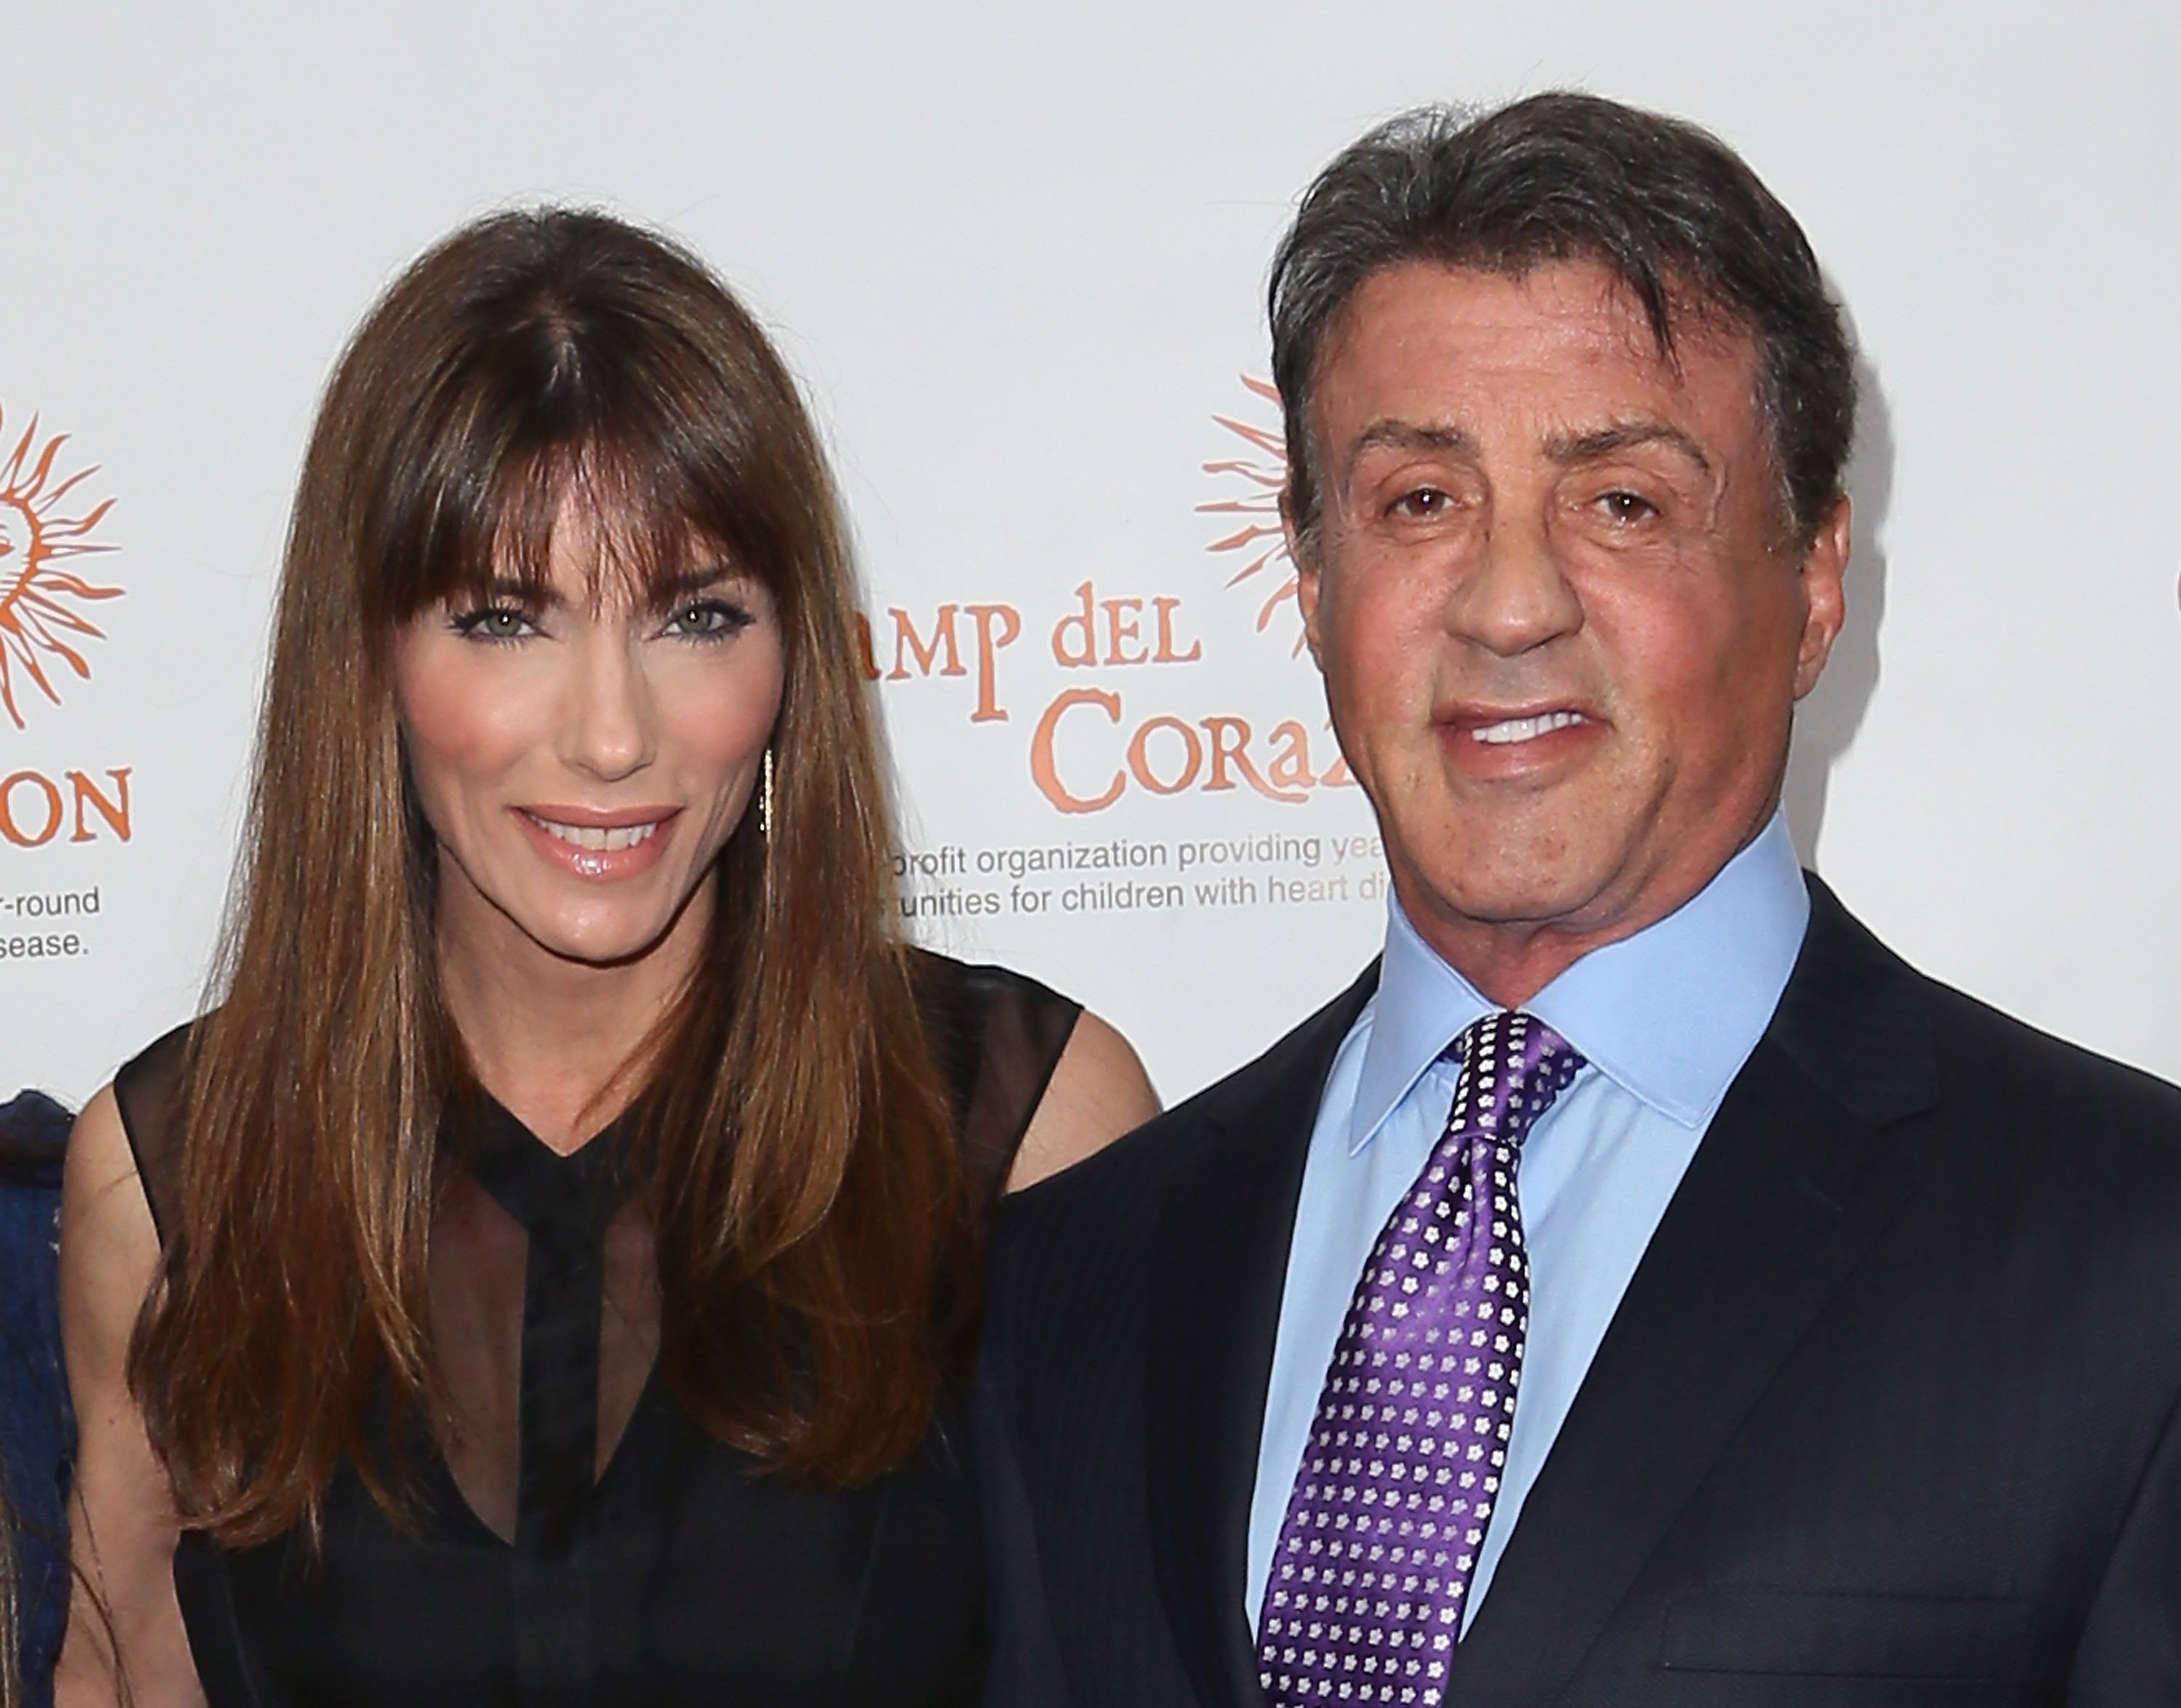 Sylvester Stallone and wife Jennifer Flavin at Camp del Corazon's 11th Annual Gala del Sol at the Ray Dolby Ballroom at Hollywood & Highland Center on April 19, 2014 | Source: Getty Images